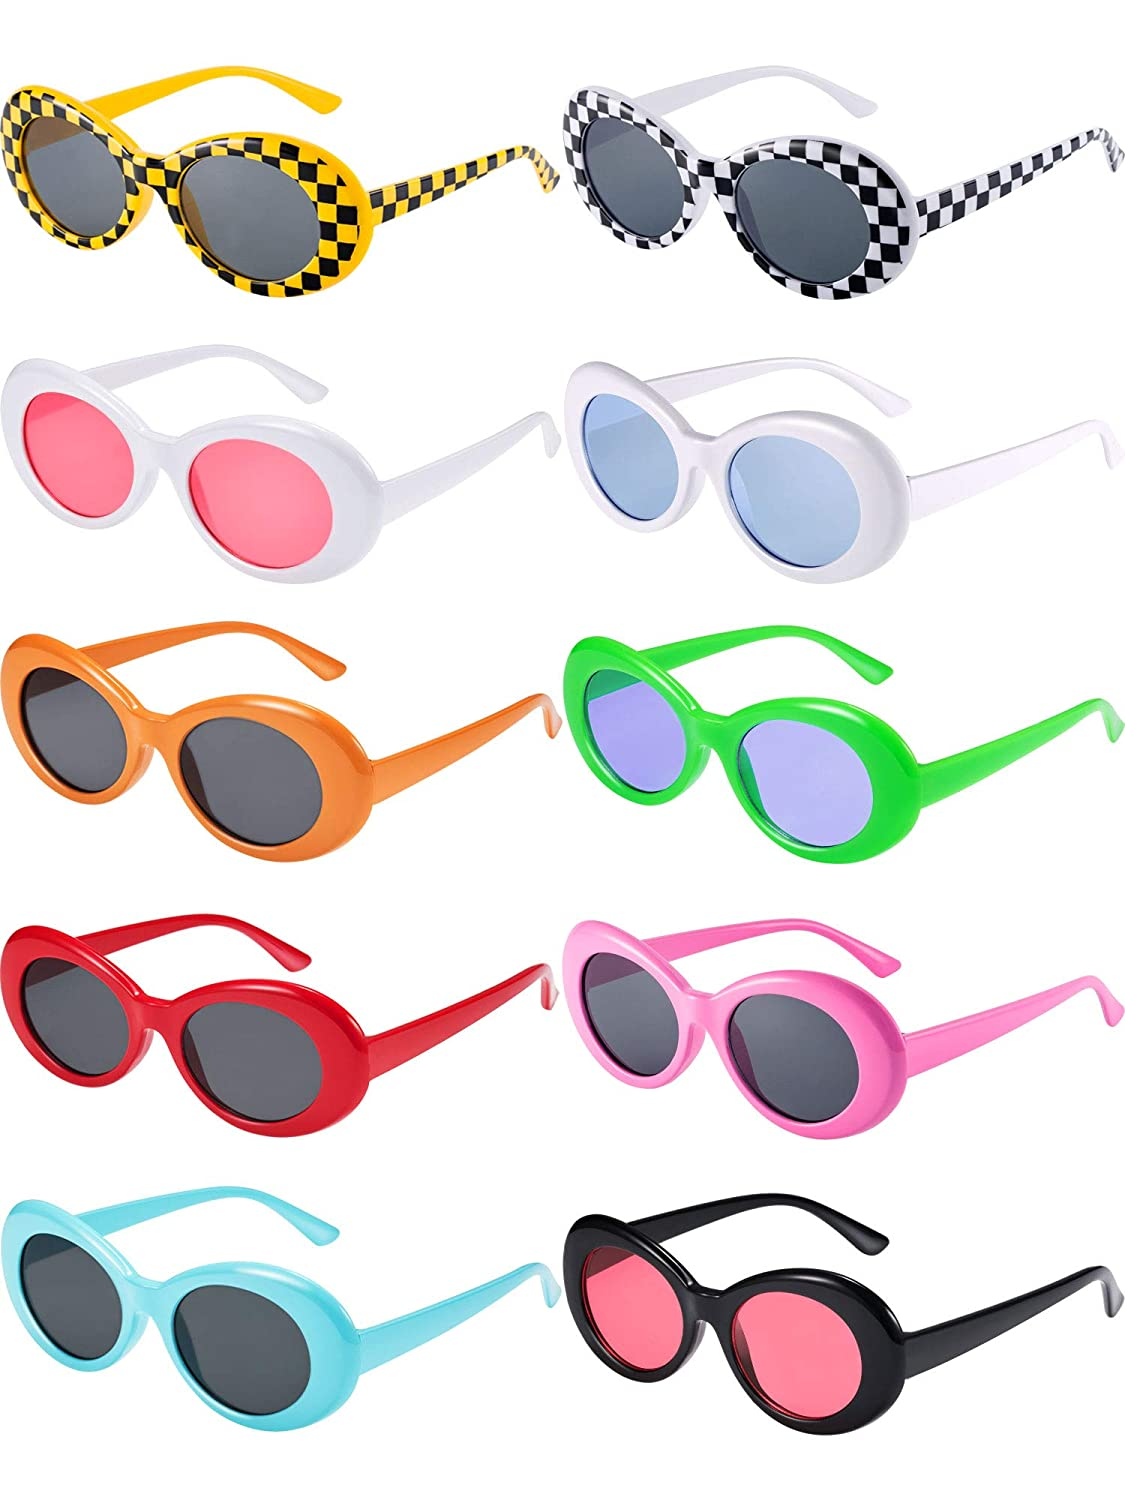 Amazon.com: Blulu 10 pares de gafas de sol retro Clout ...